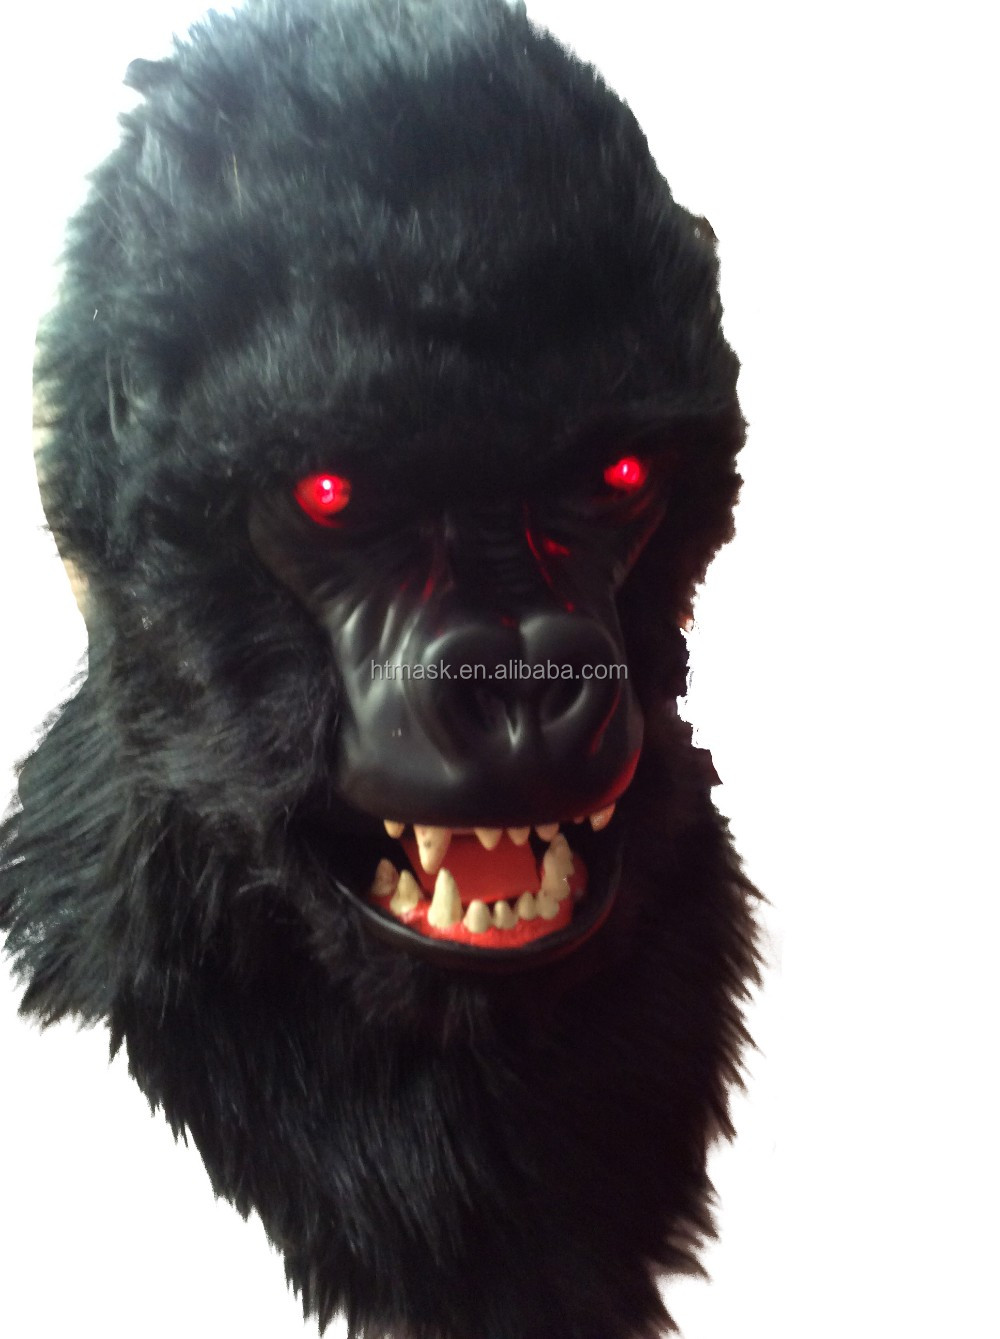 Horror Scary Gorilla Animal Masquerade Latex Mask Black black mouse mask